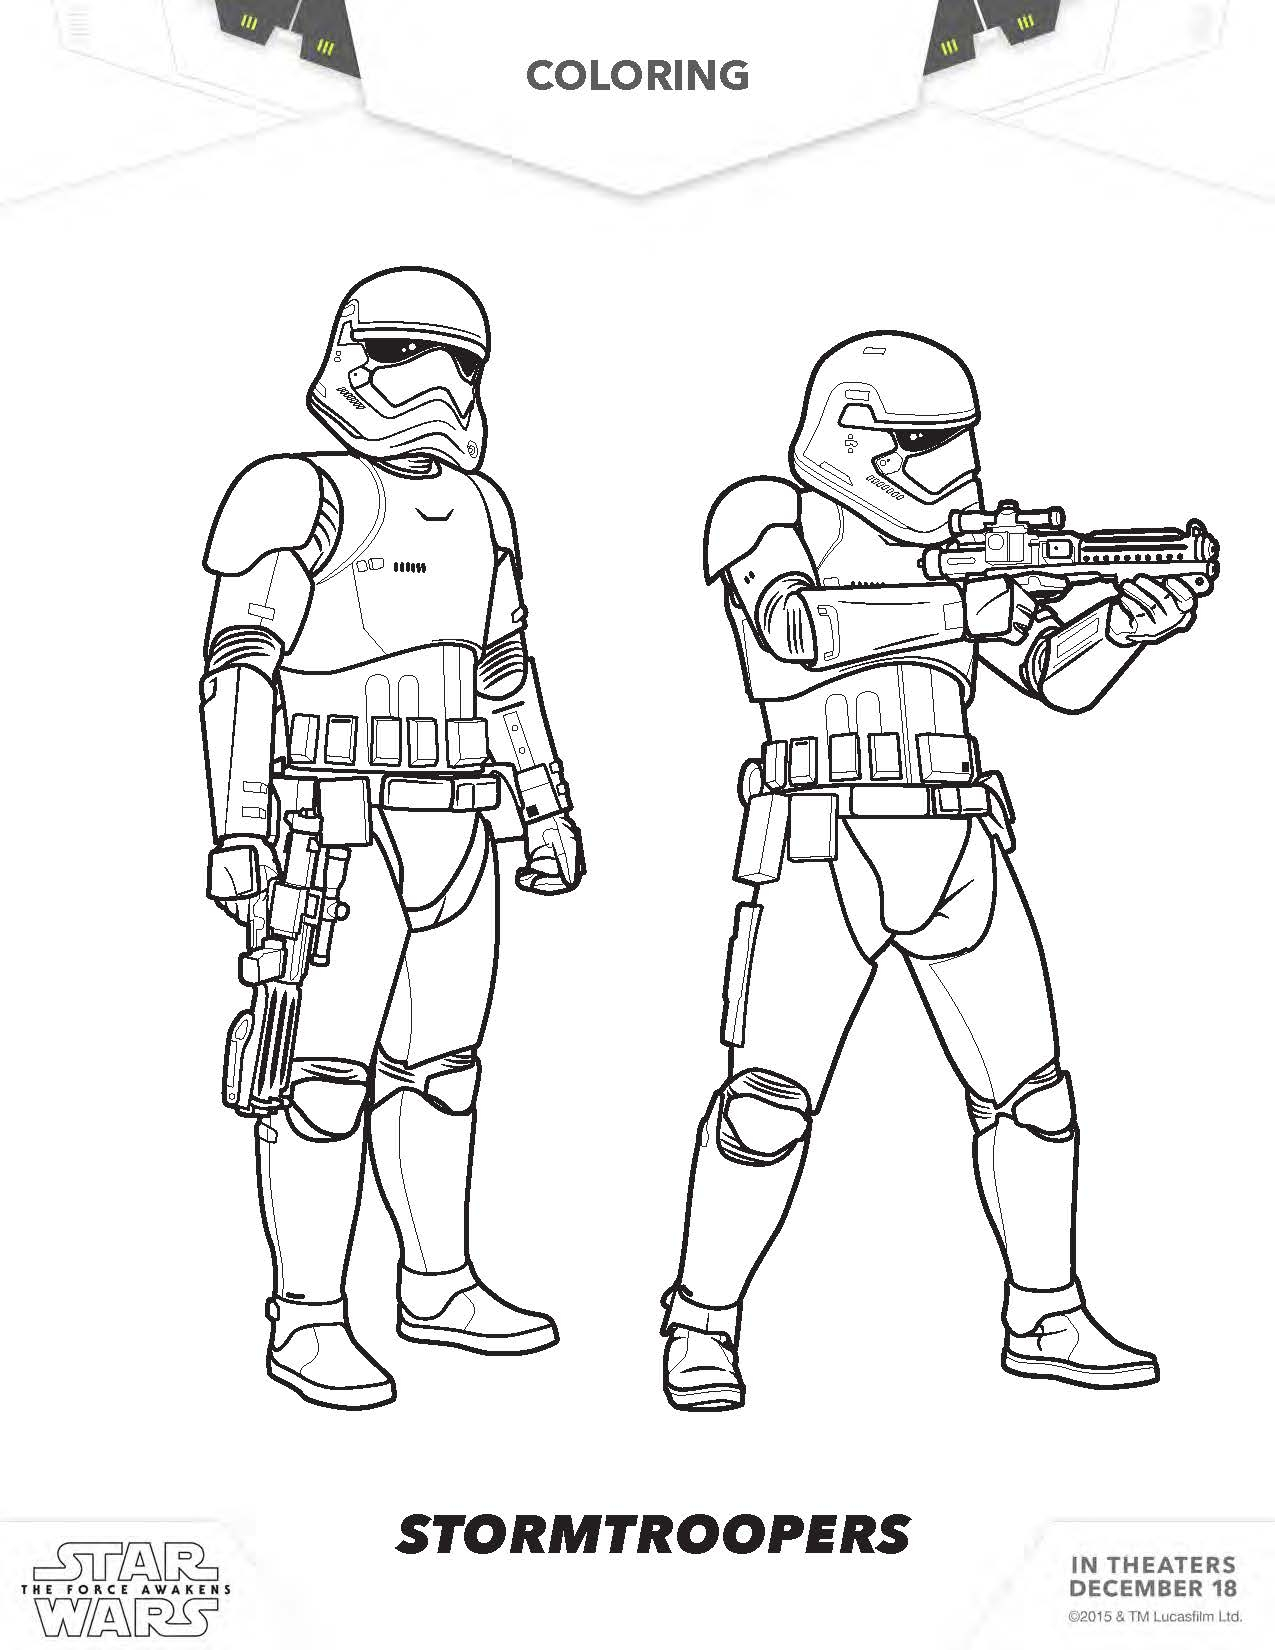 star wars the force awakens coloring pages Download-New Star Wars the force Awakens Coloring Pages Free 5 a Star Wars Force 8-d